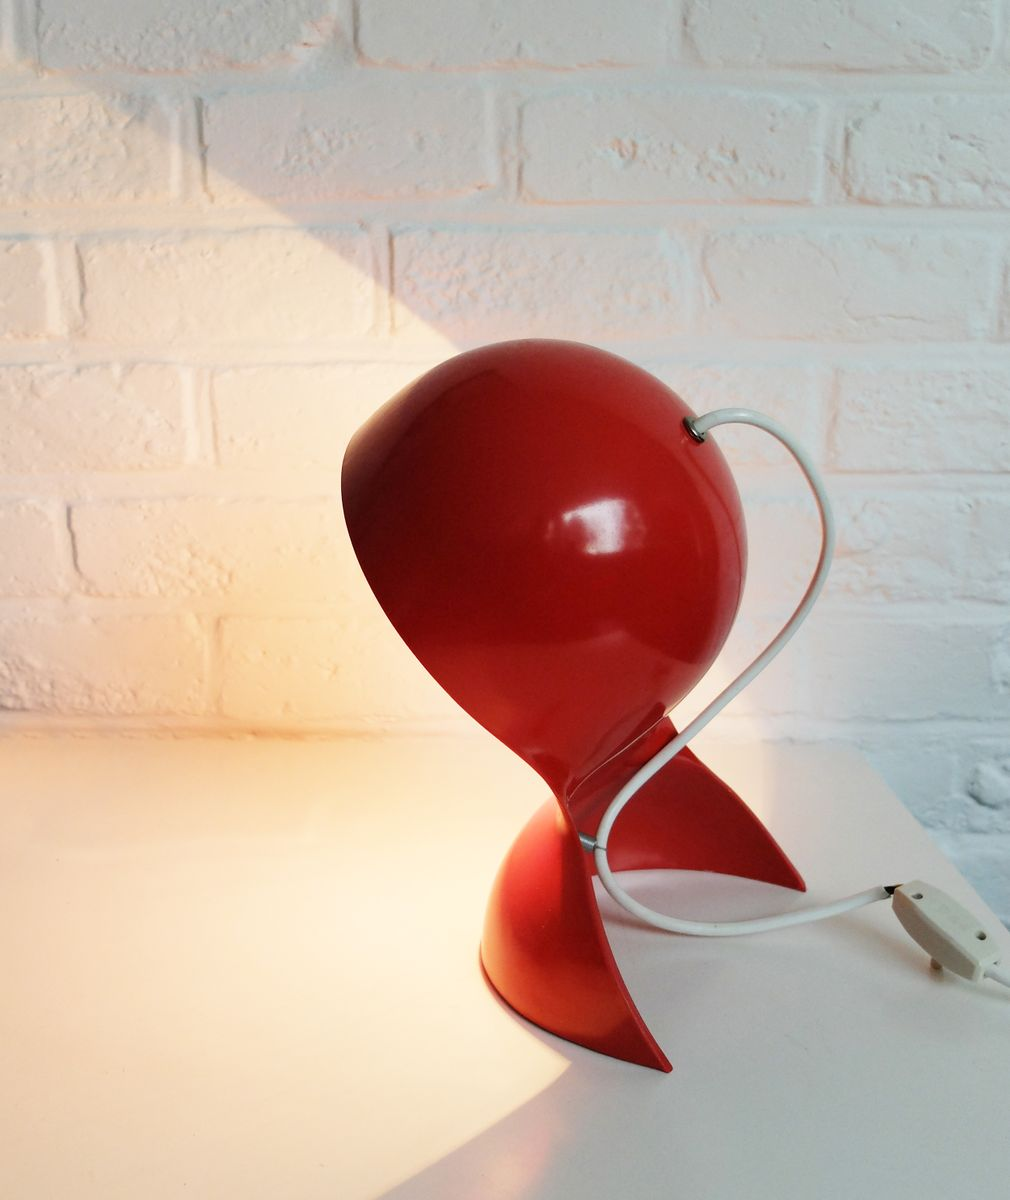 lampe de bureau dalu rouge par vico magistretti pour artemide 1960s en vente sur pamono. Black Bedroom Furniture Sets. Home Design Ideas